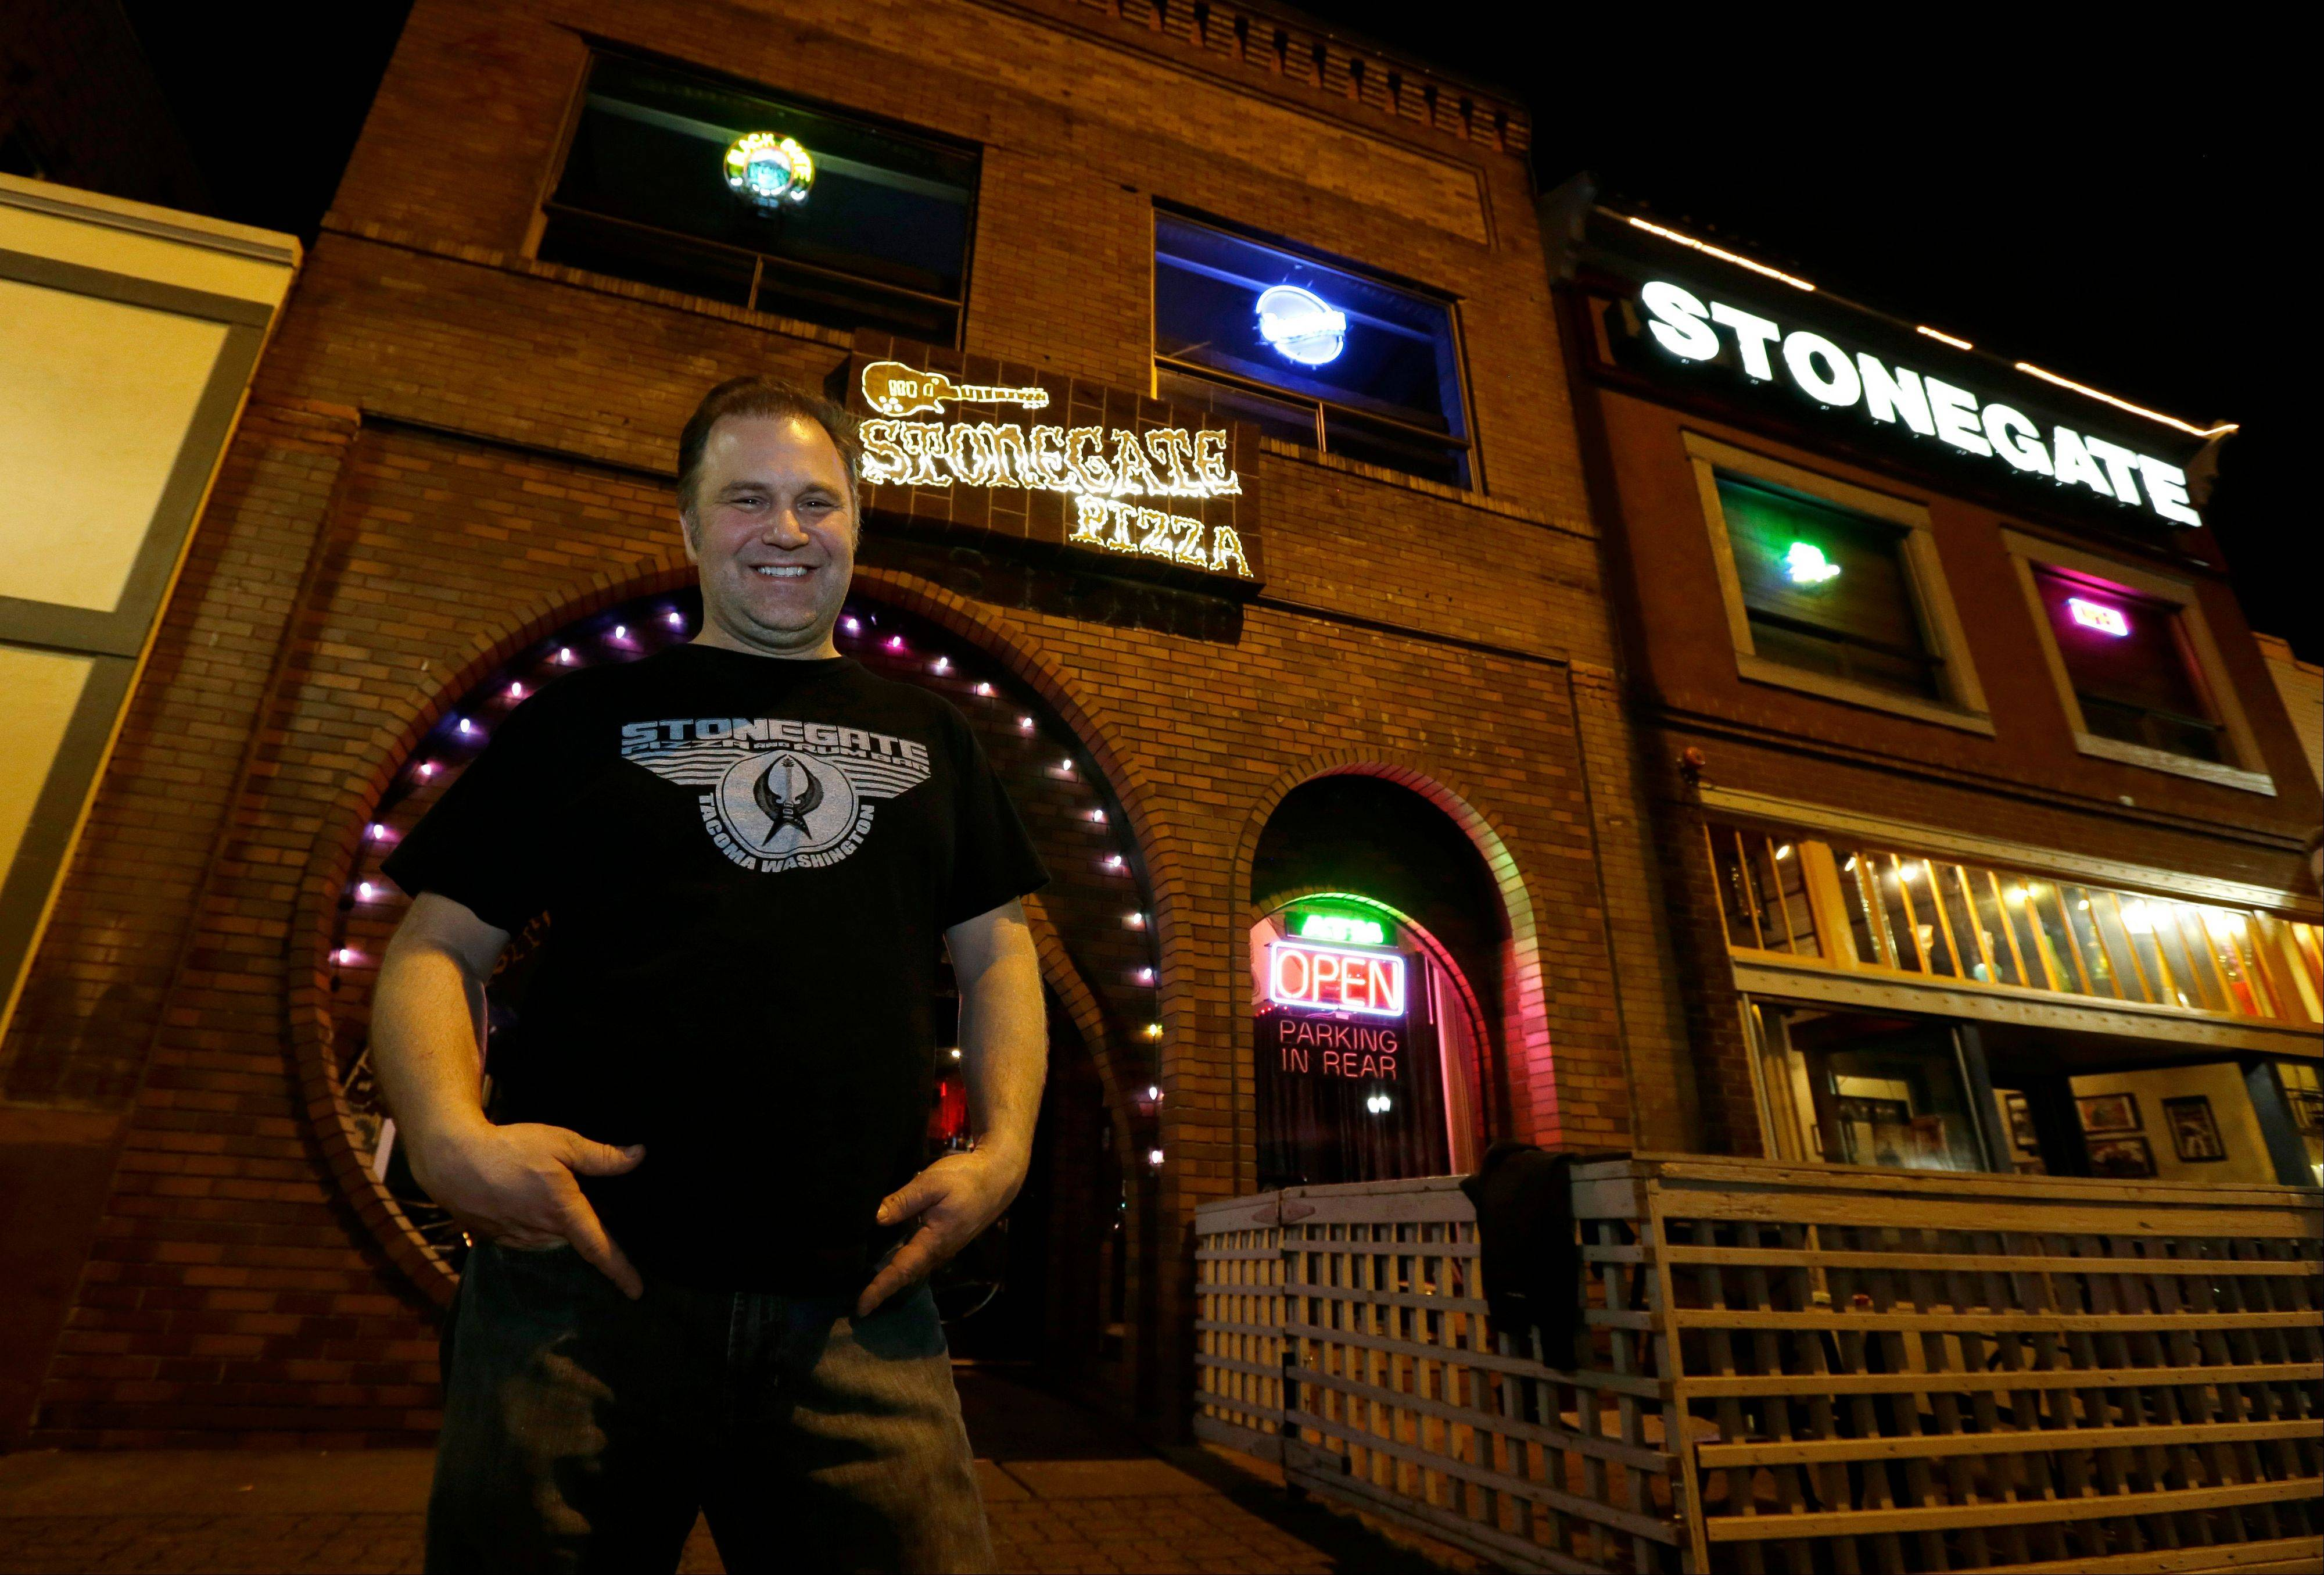 Jeff Call, owner of the Stonegate pizza-and-rum bar, poses for a photo in front of his business, Saturday, March 2, 2013, in Tacoma, Wash. Call charges patrons a small fee to become a member of the private second-floor club in the lounge area upstairs, which allows �vaporizing� marijuana, a method that involves heating the marijuana without burning it. Last fall, Washington and Colorado became the first states to legalize marijuana use for adults over 21.